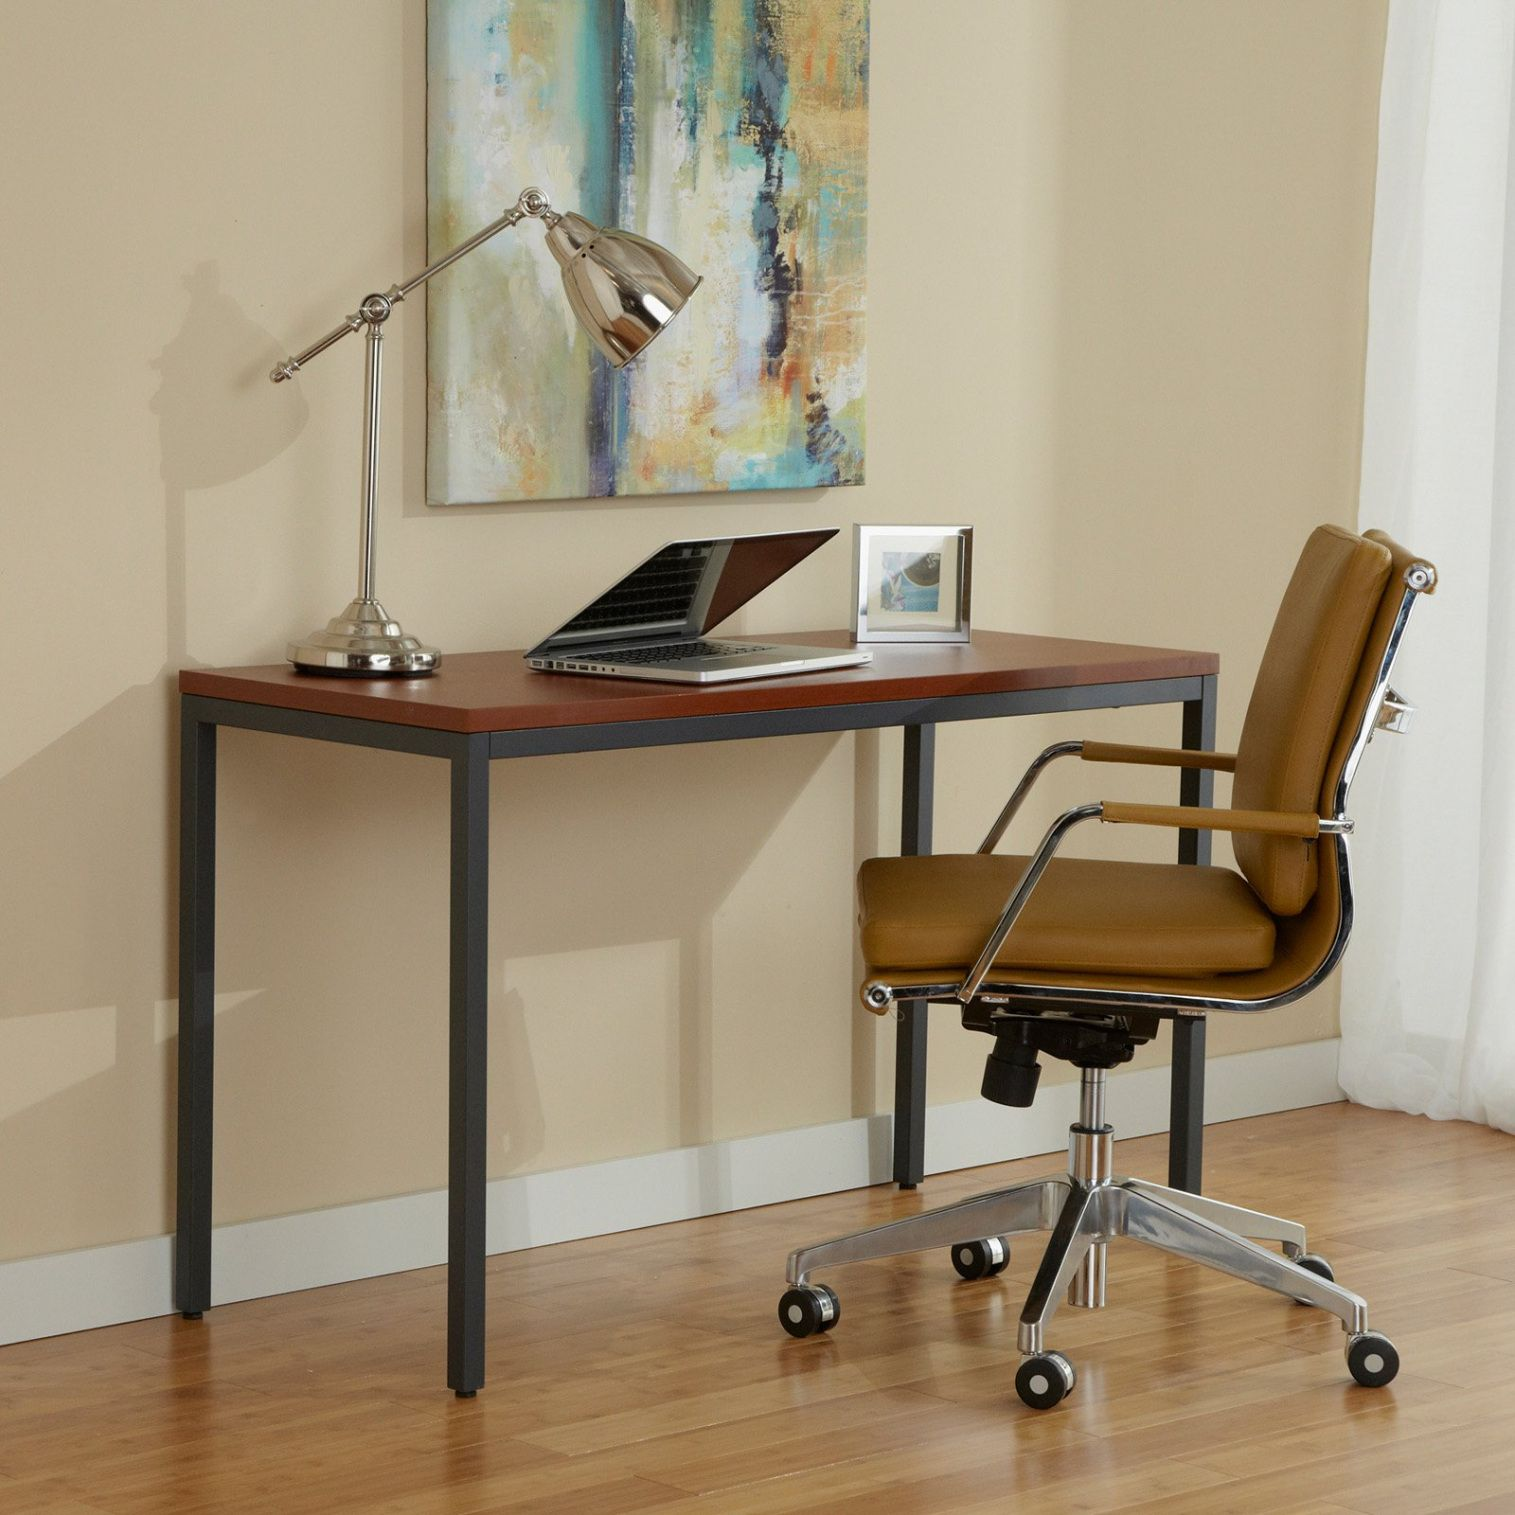 Narrow Office Desks   Office Furniture For Home Check More At Http://www